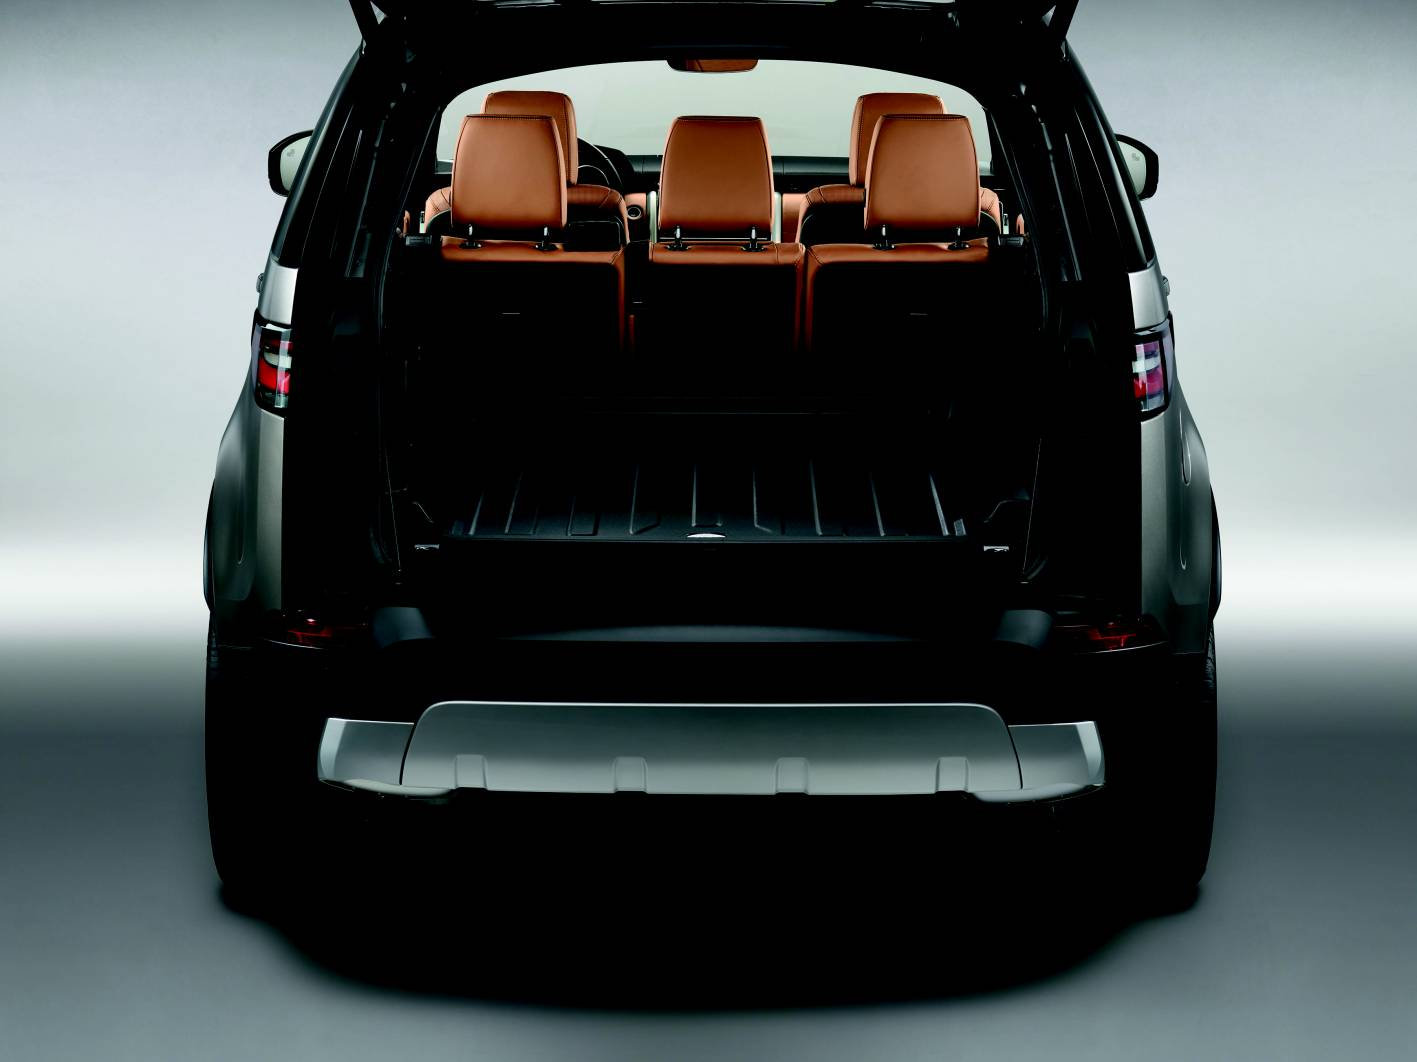 discovery rover land space boot breaks forcegt litres behind 2500 suv provides load premium tailgate